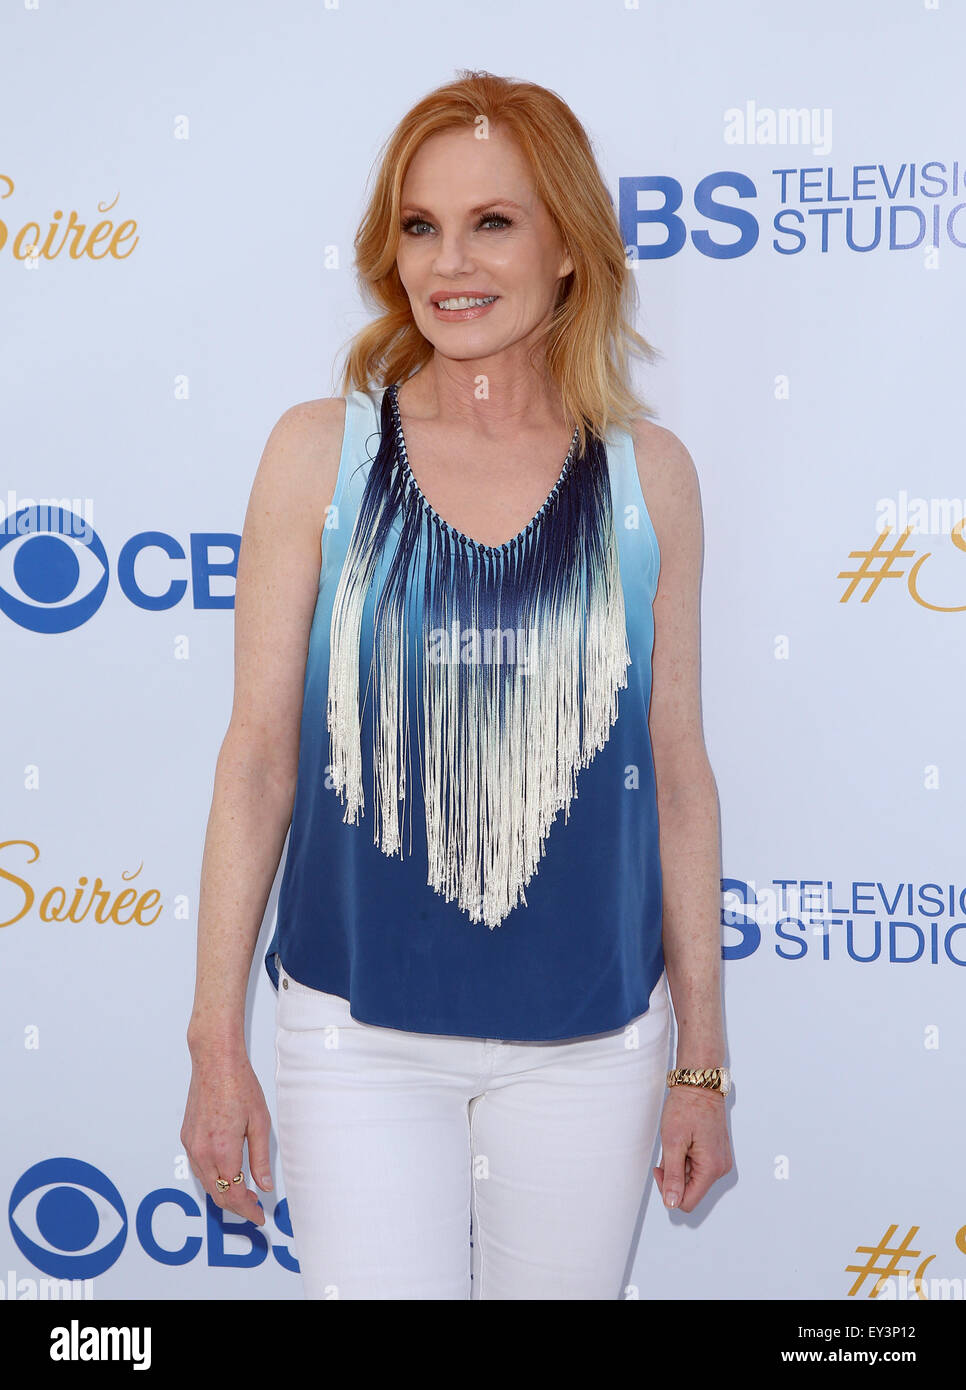 3rd Annual CBS Television Studios Rooftop Summer Soiree  Featuring: Marg Helgenberger Where: West Hollywood, California, Stock Photo